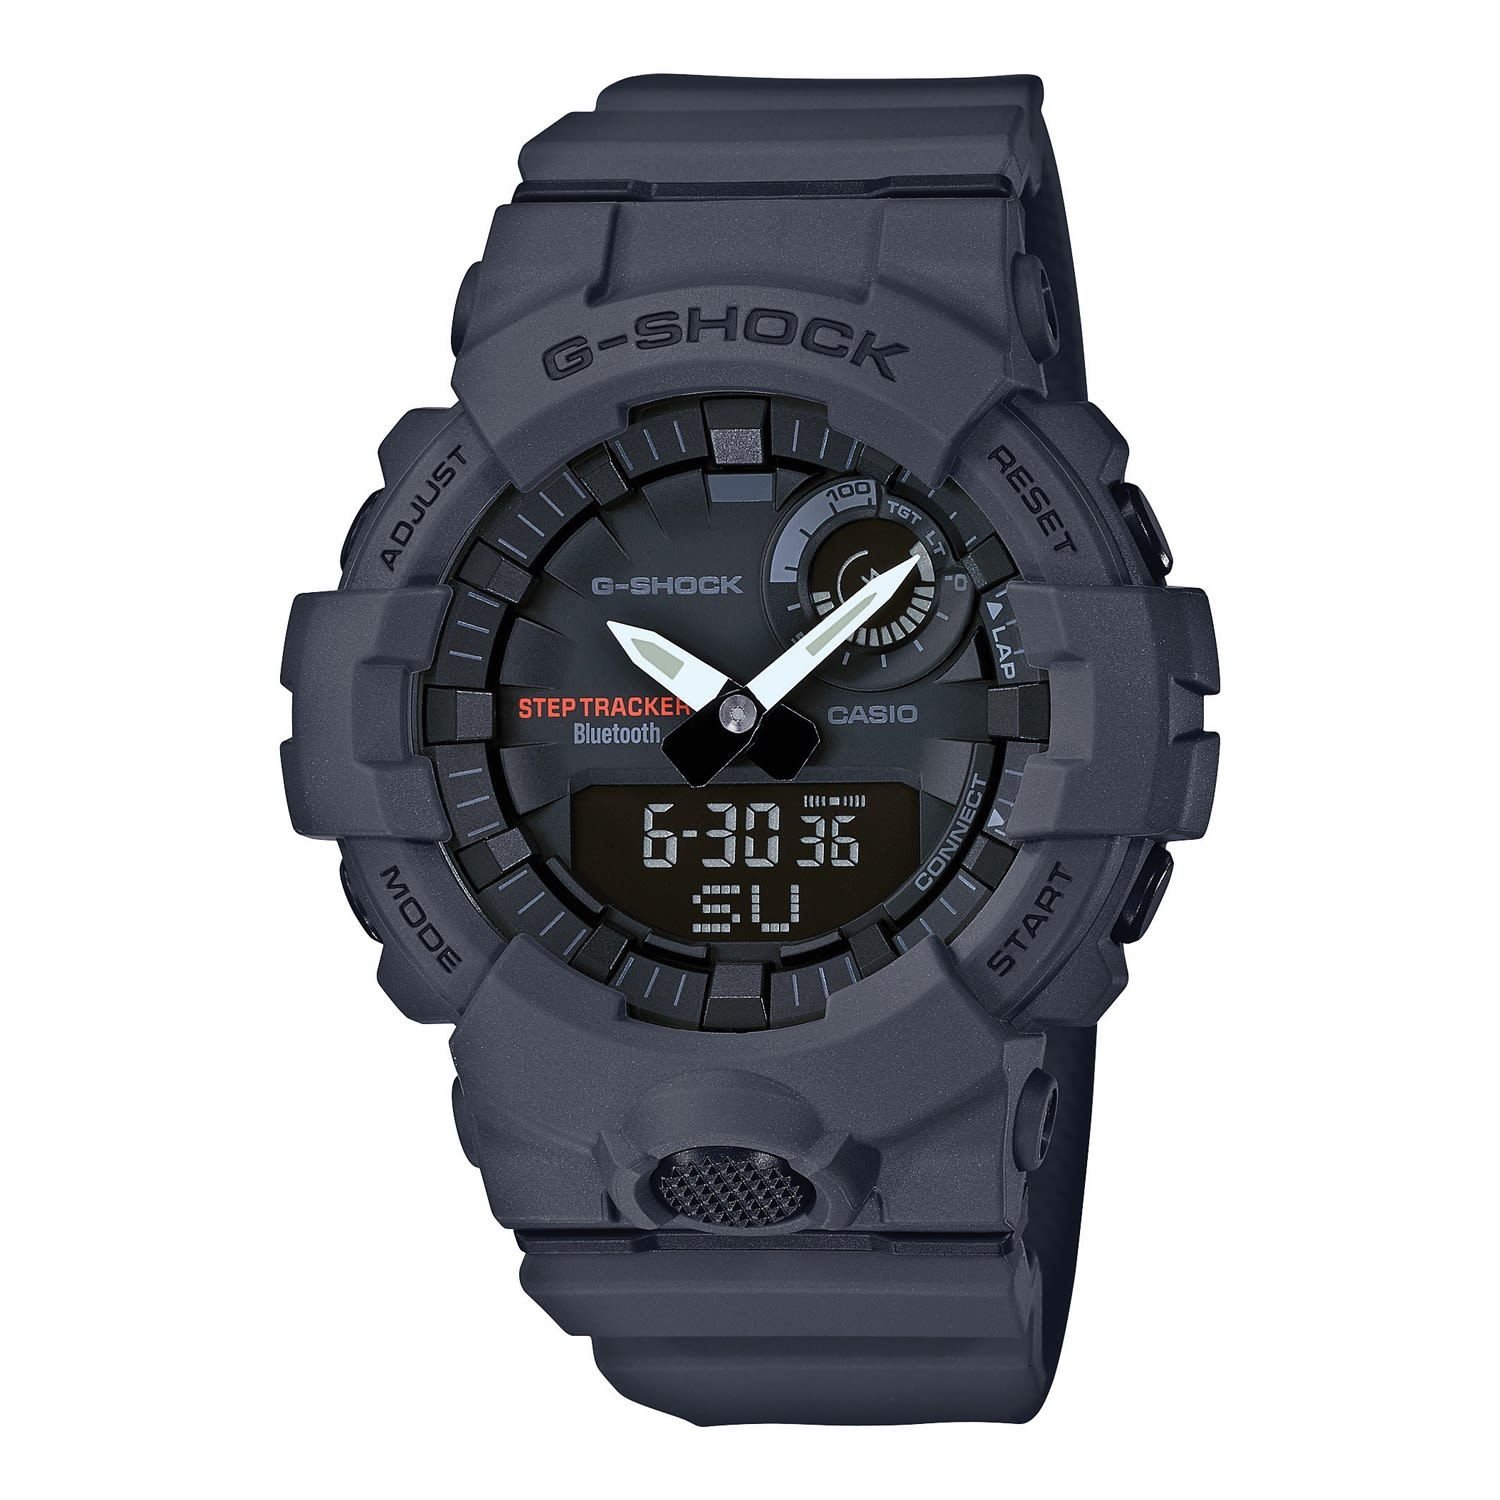 Casio G-Shock Watch Bluetooth Step Tracker GBA-800